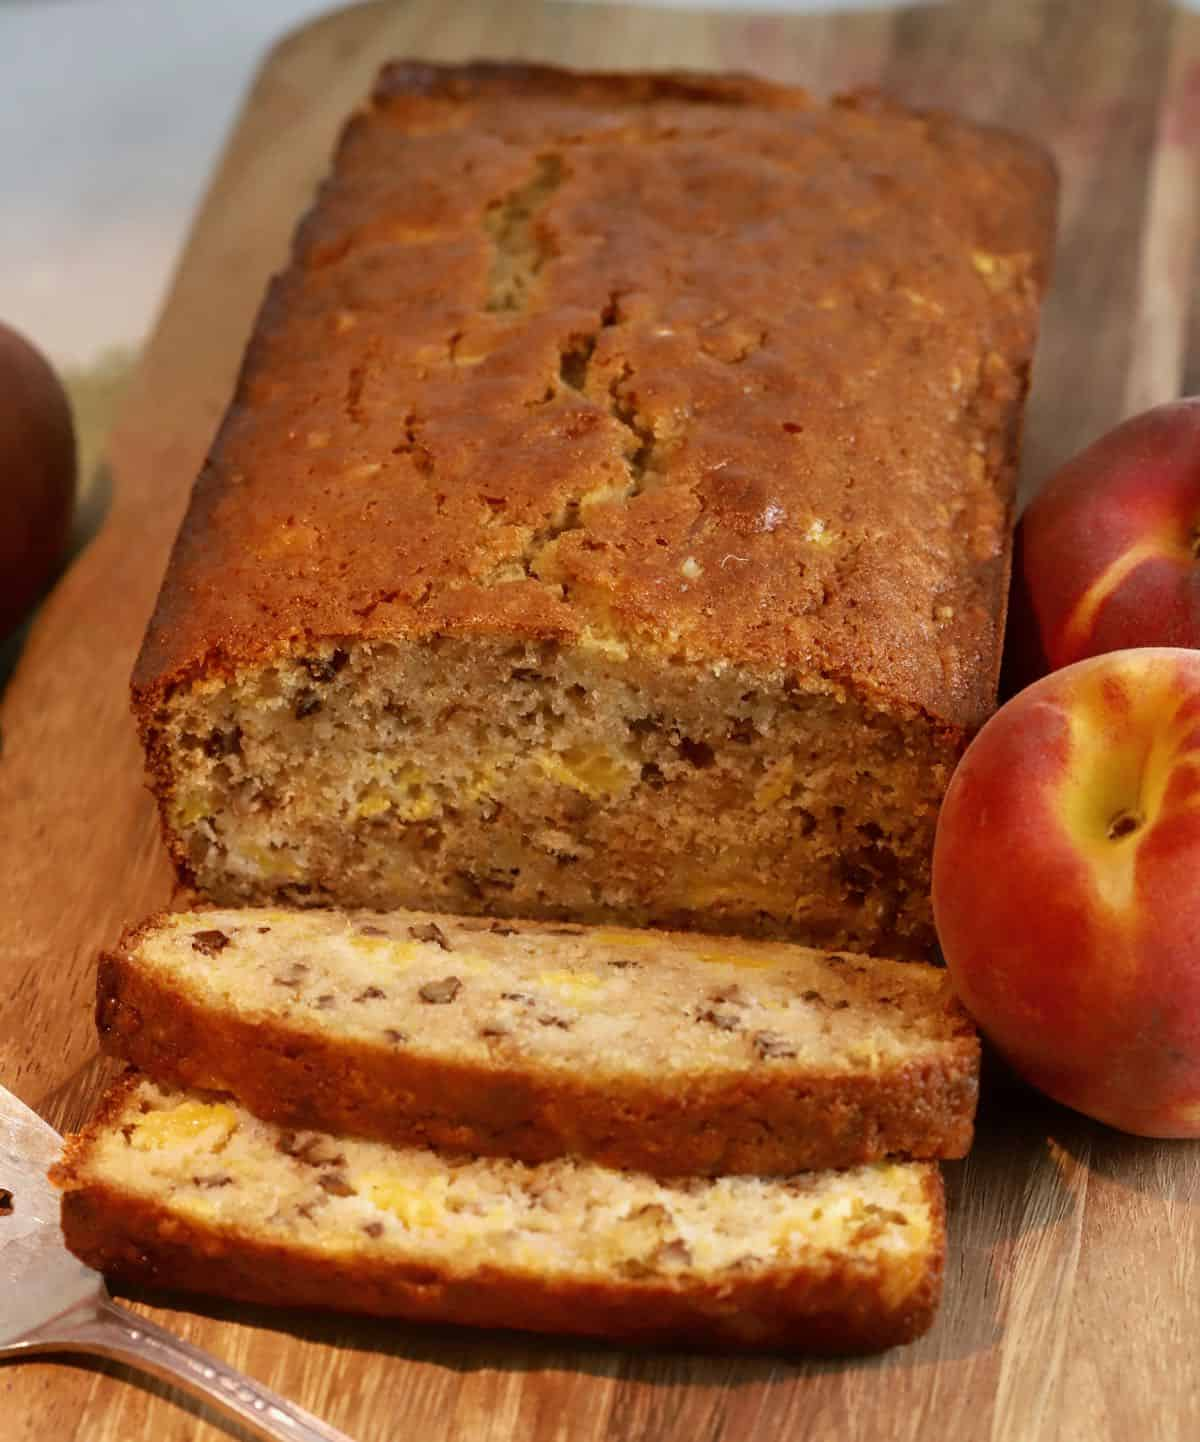 A loaf of peach bread with slices cut.